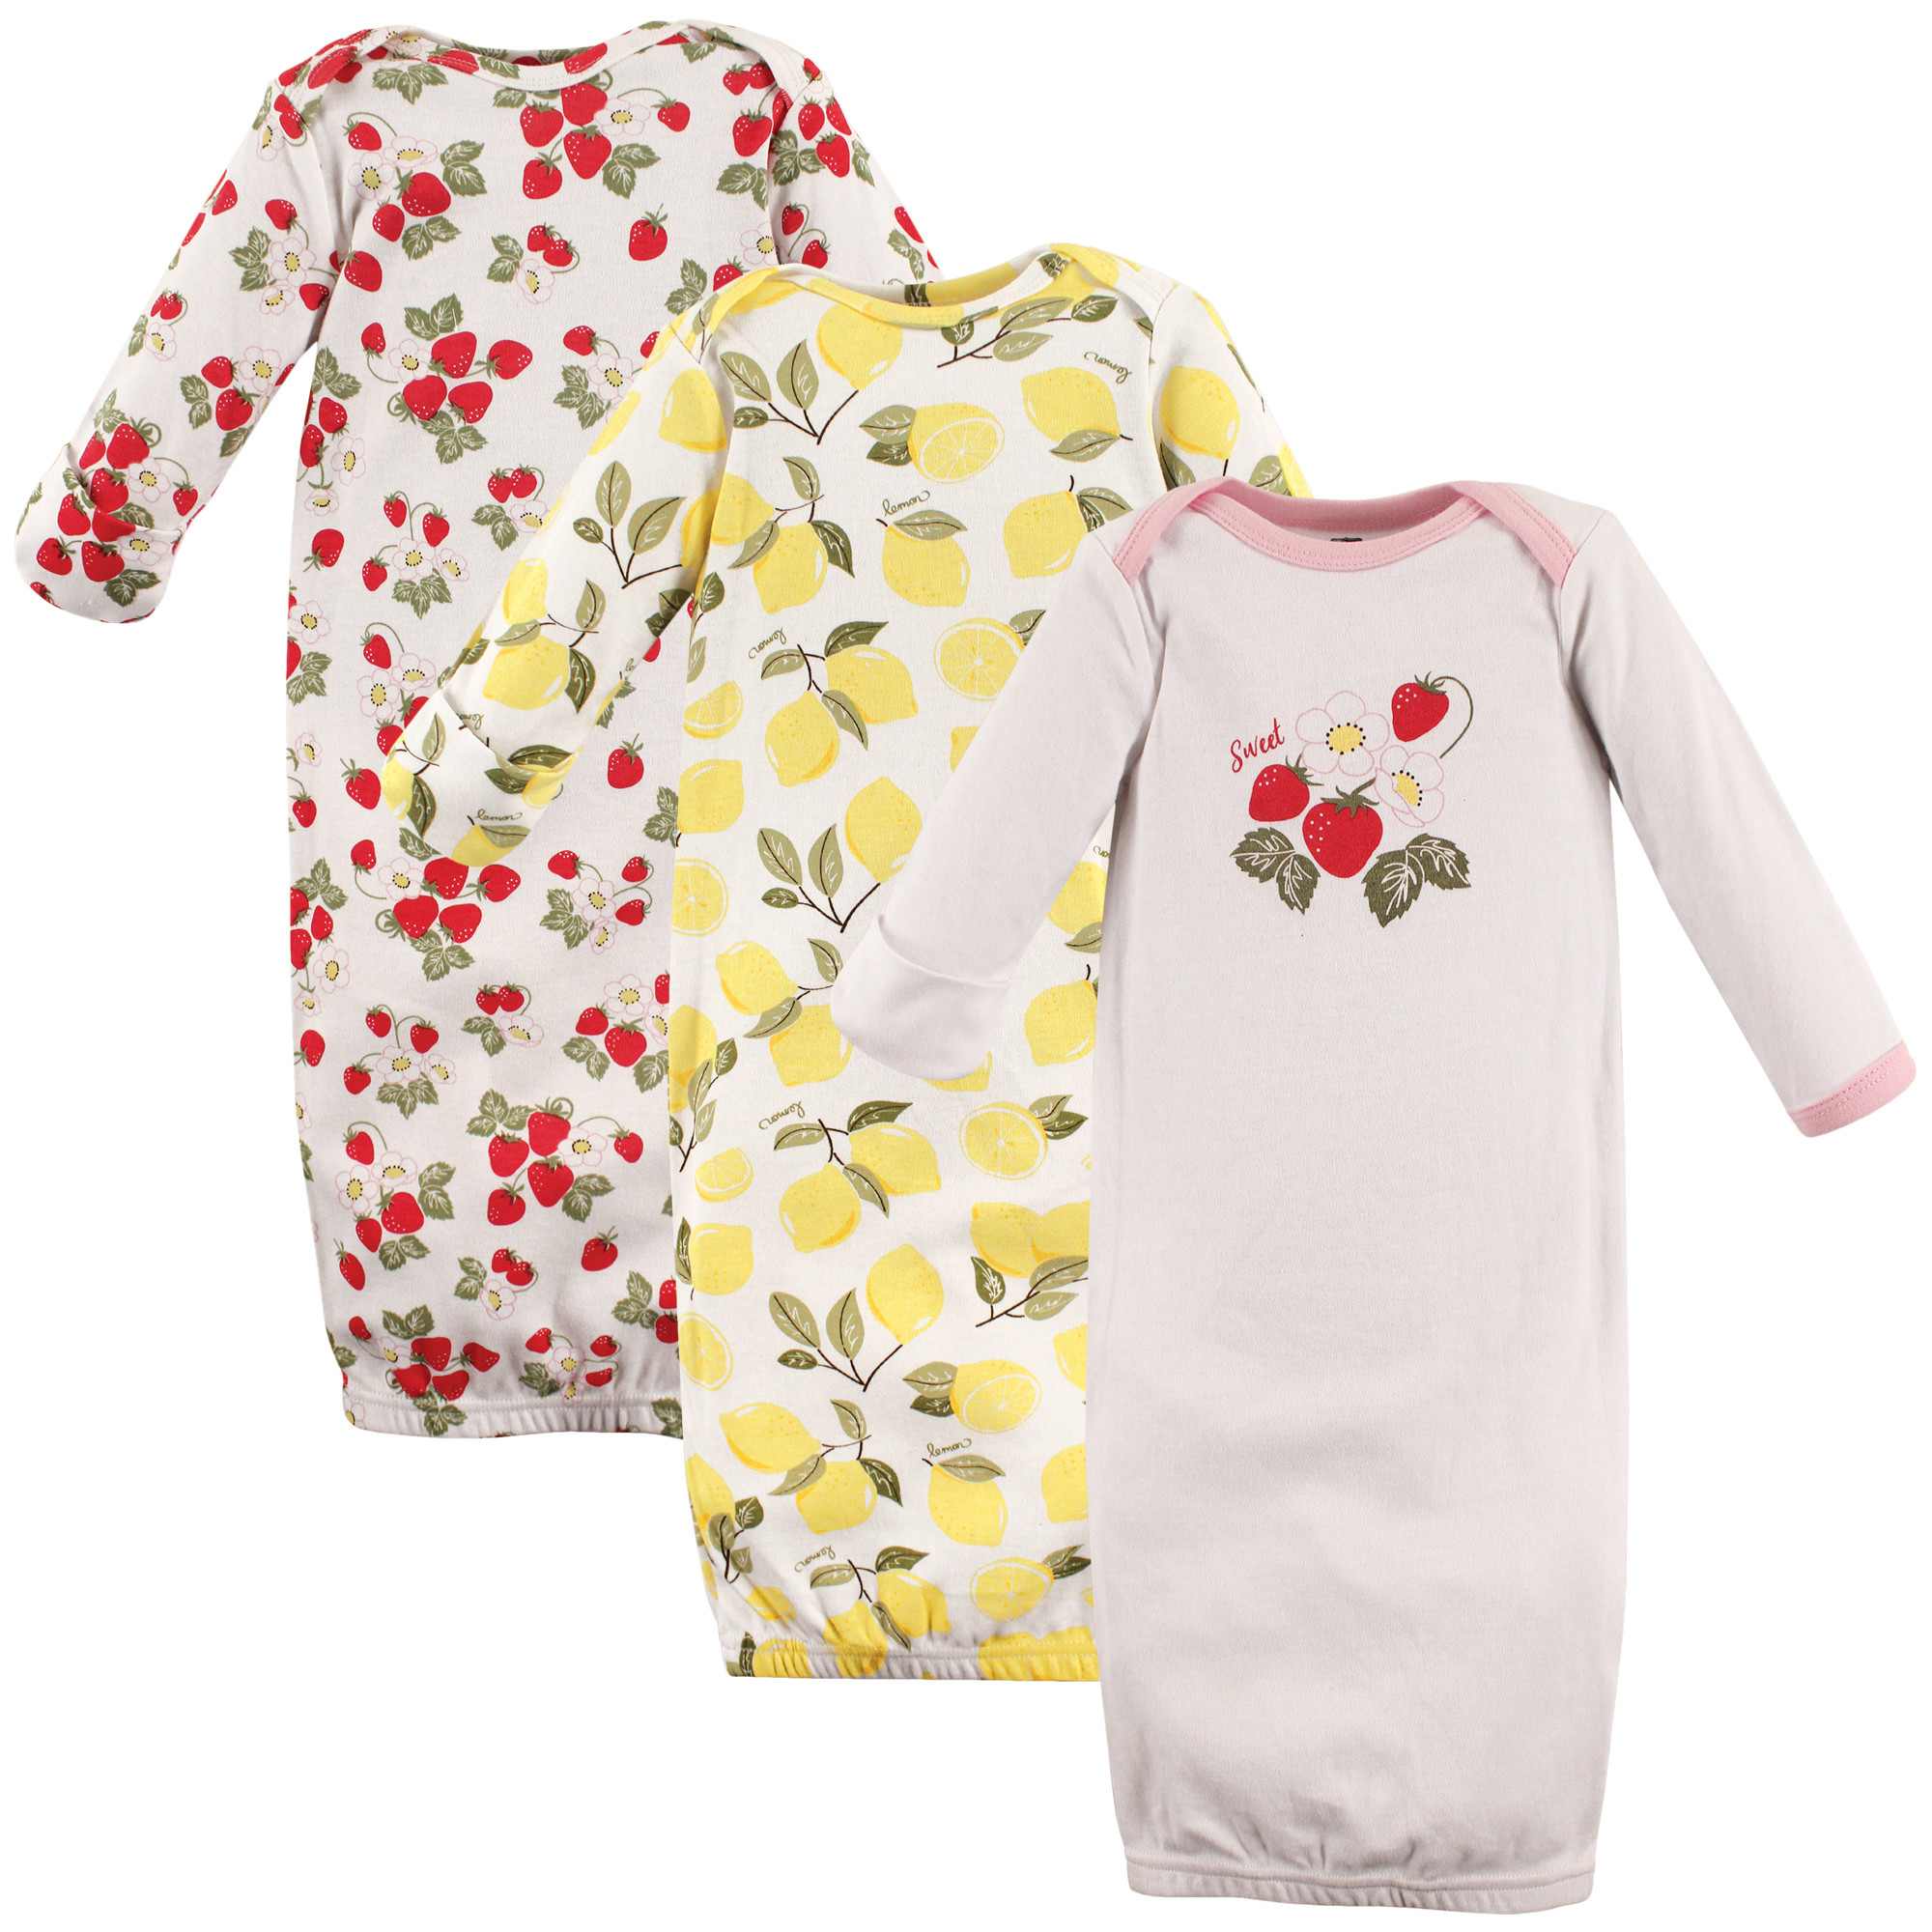 Hudson Baby - Baby Sleep Gowns, 3-Pack | Affordable Infant Clothing